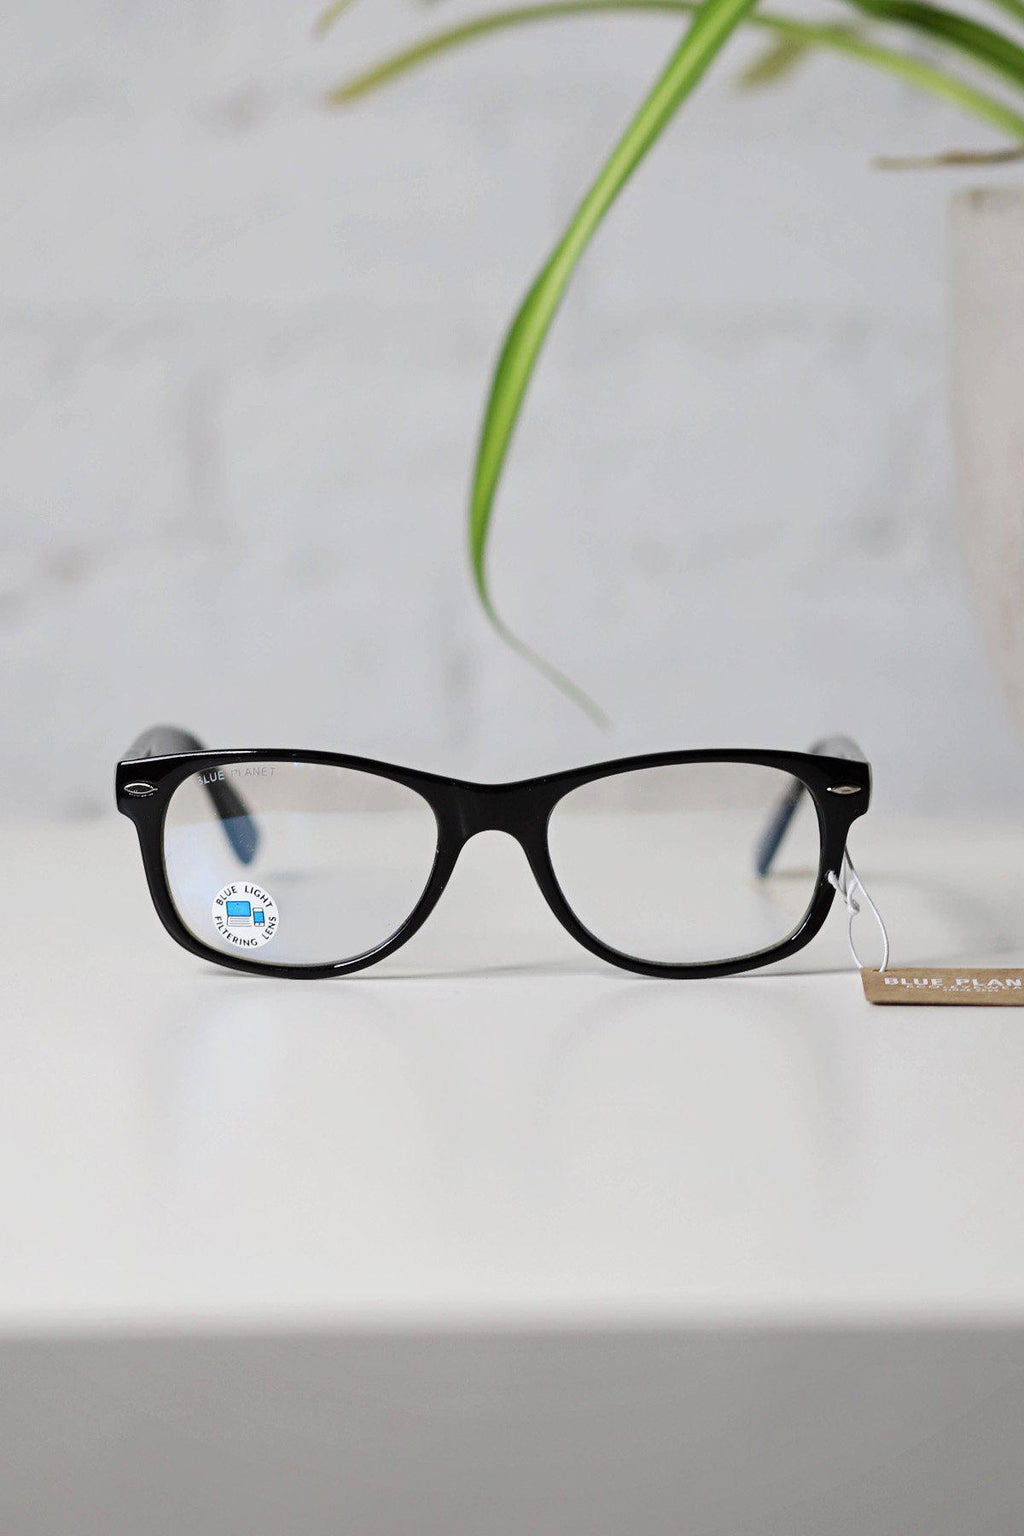 Classic Black Onyx - Unisex Blue Light Glasses - Gallery 512 Boutique